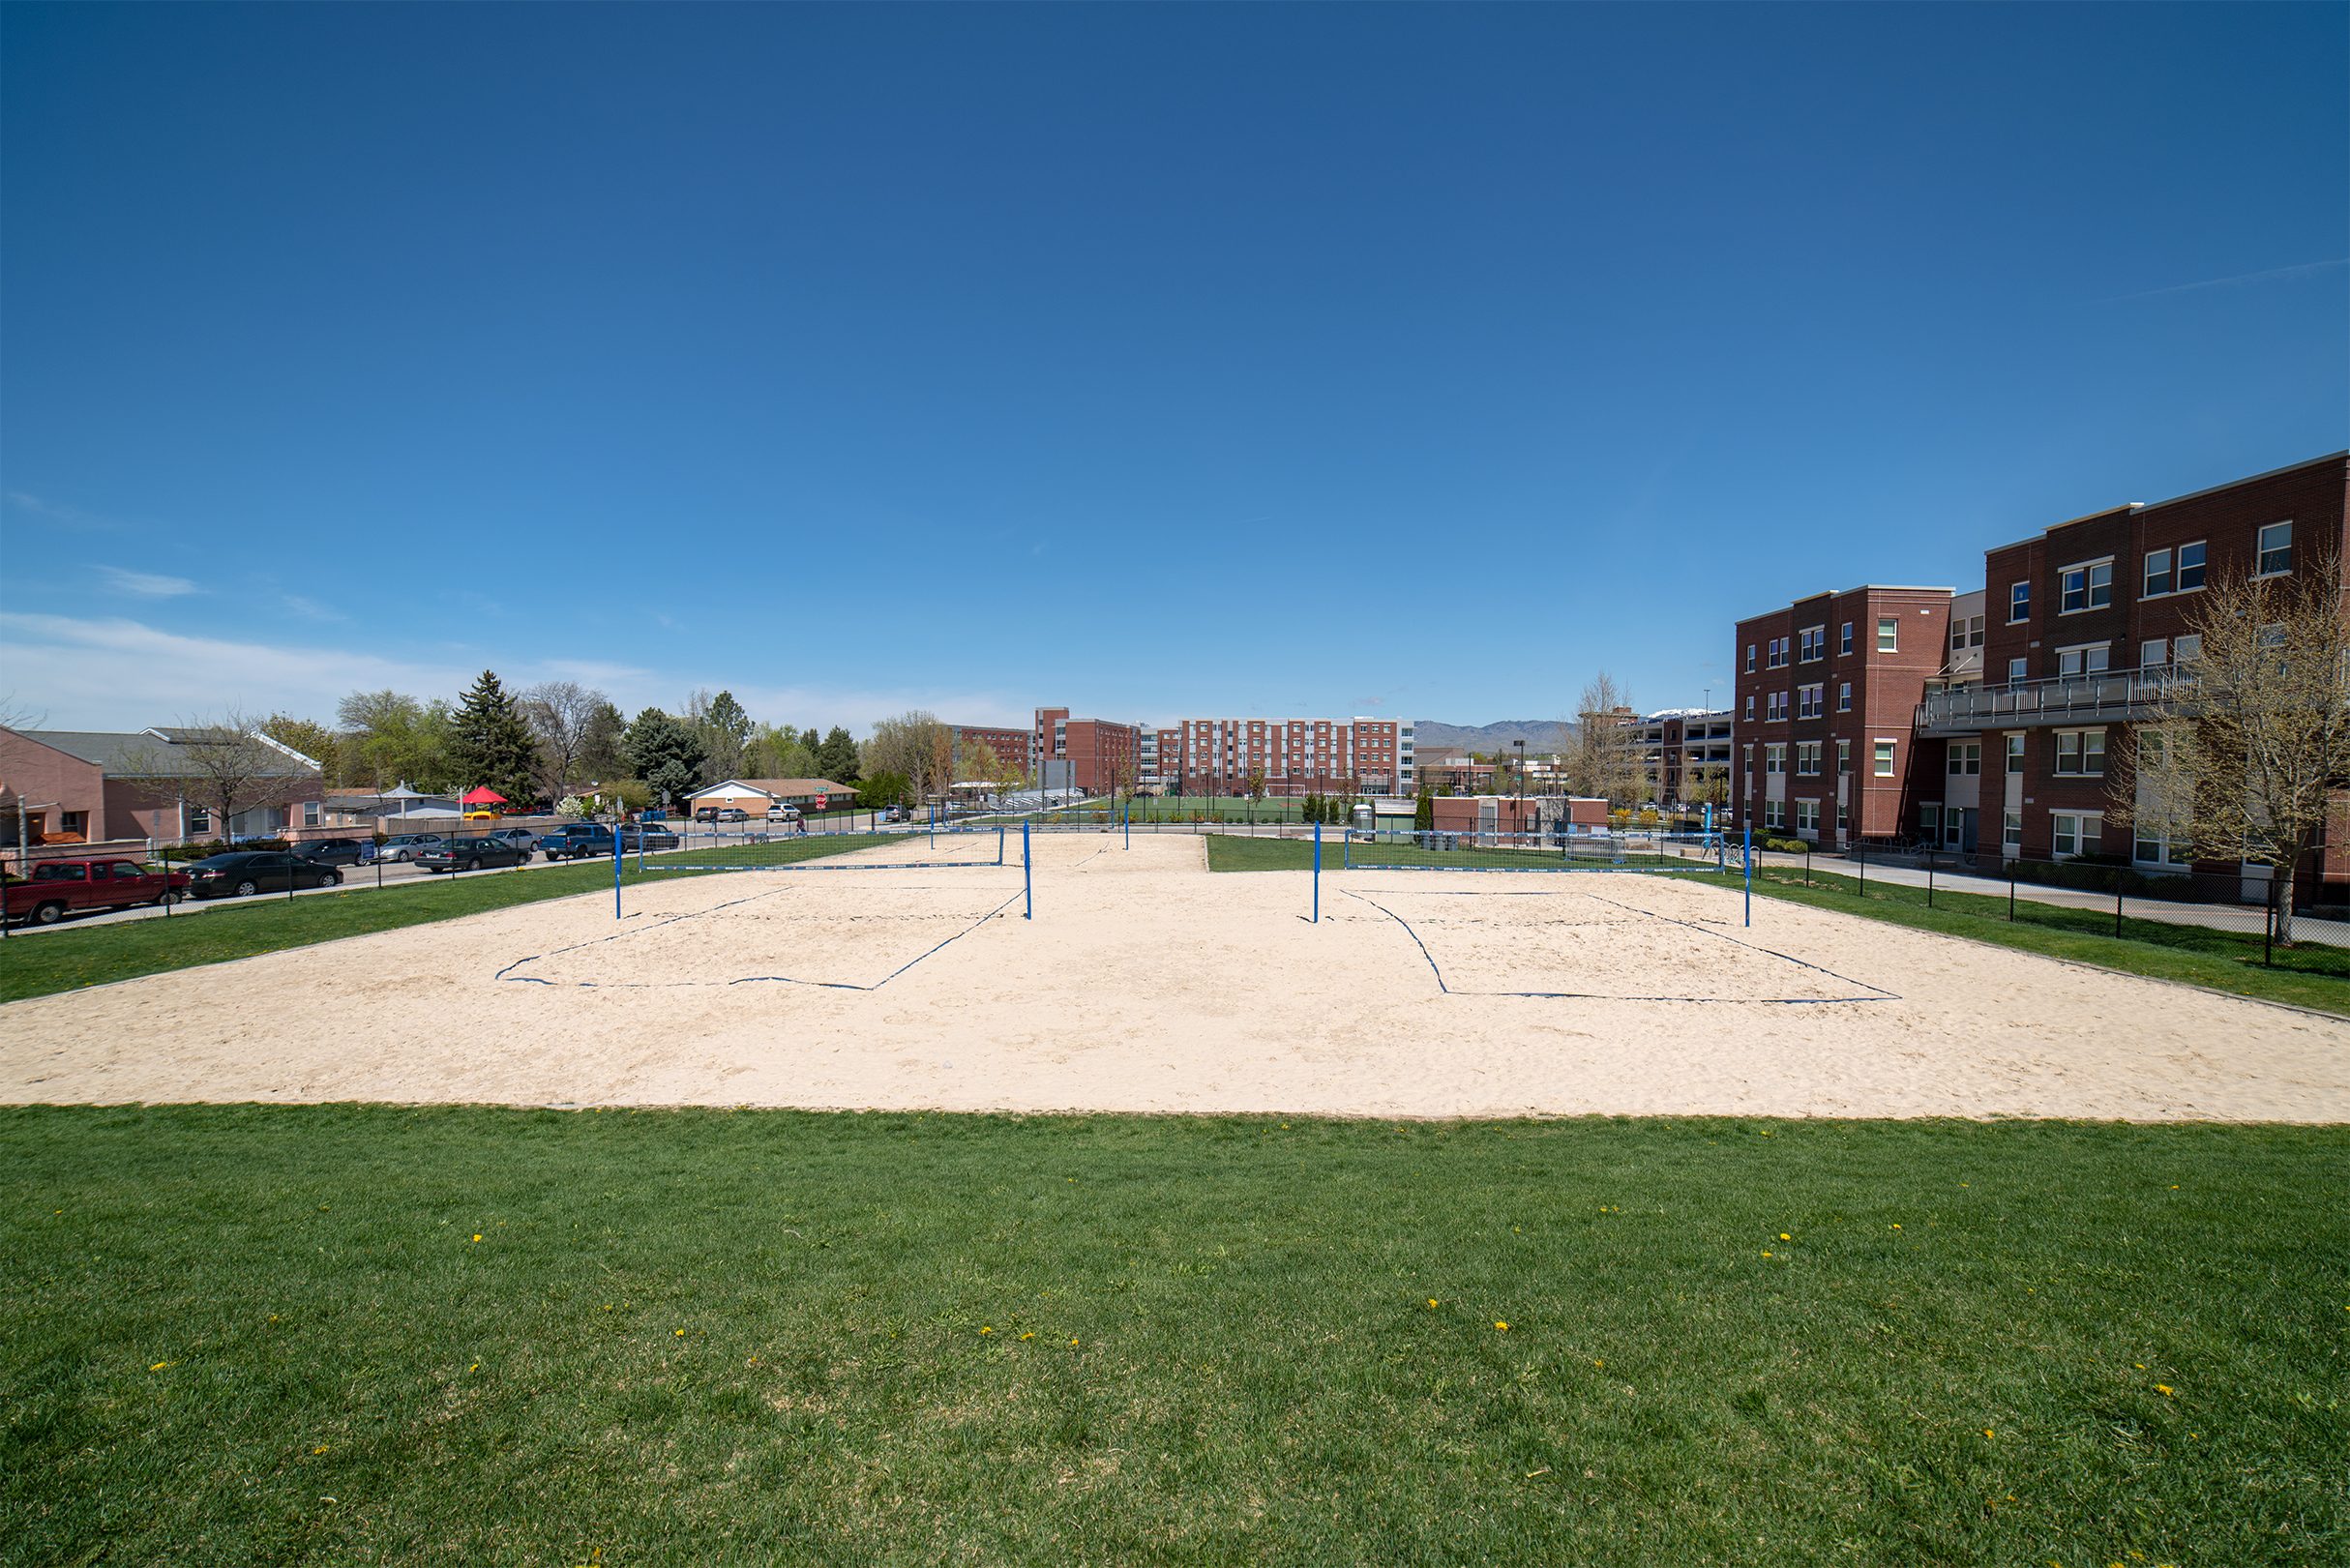 Volleyball_Wide_Angle_14mm_2